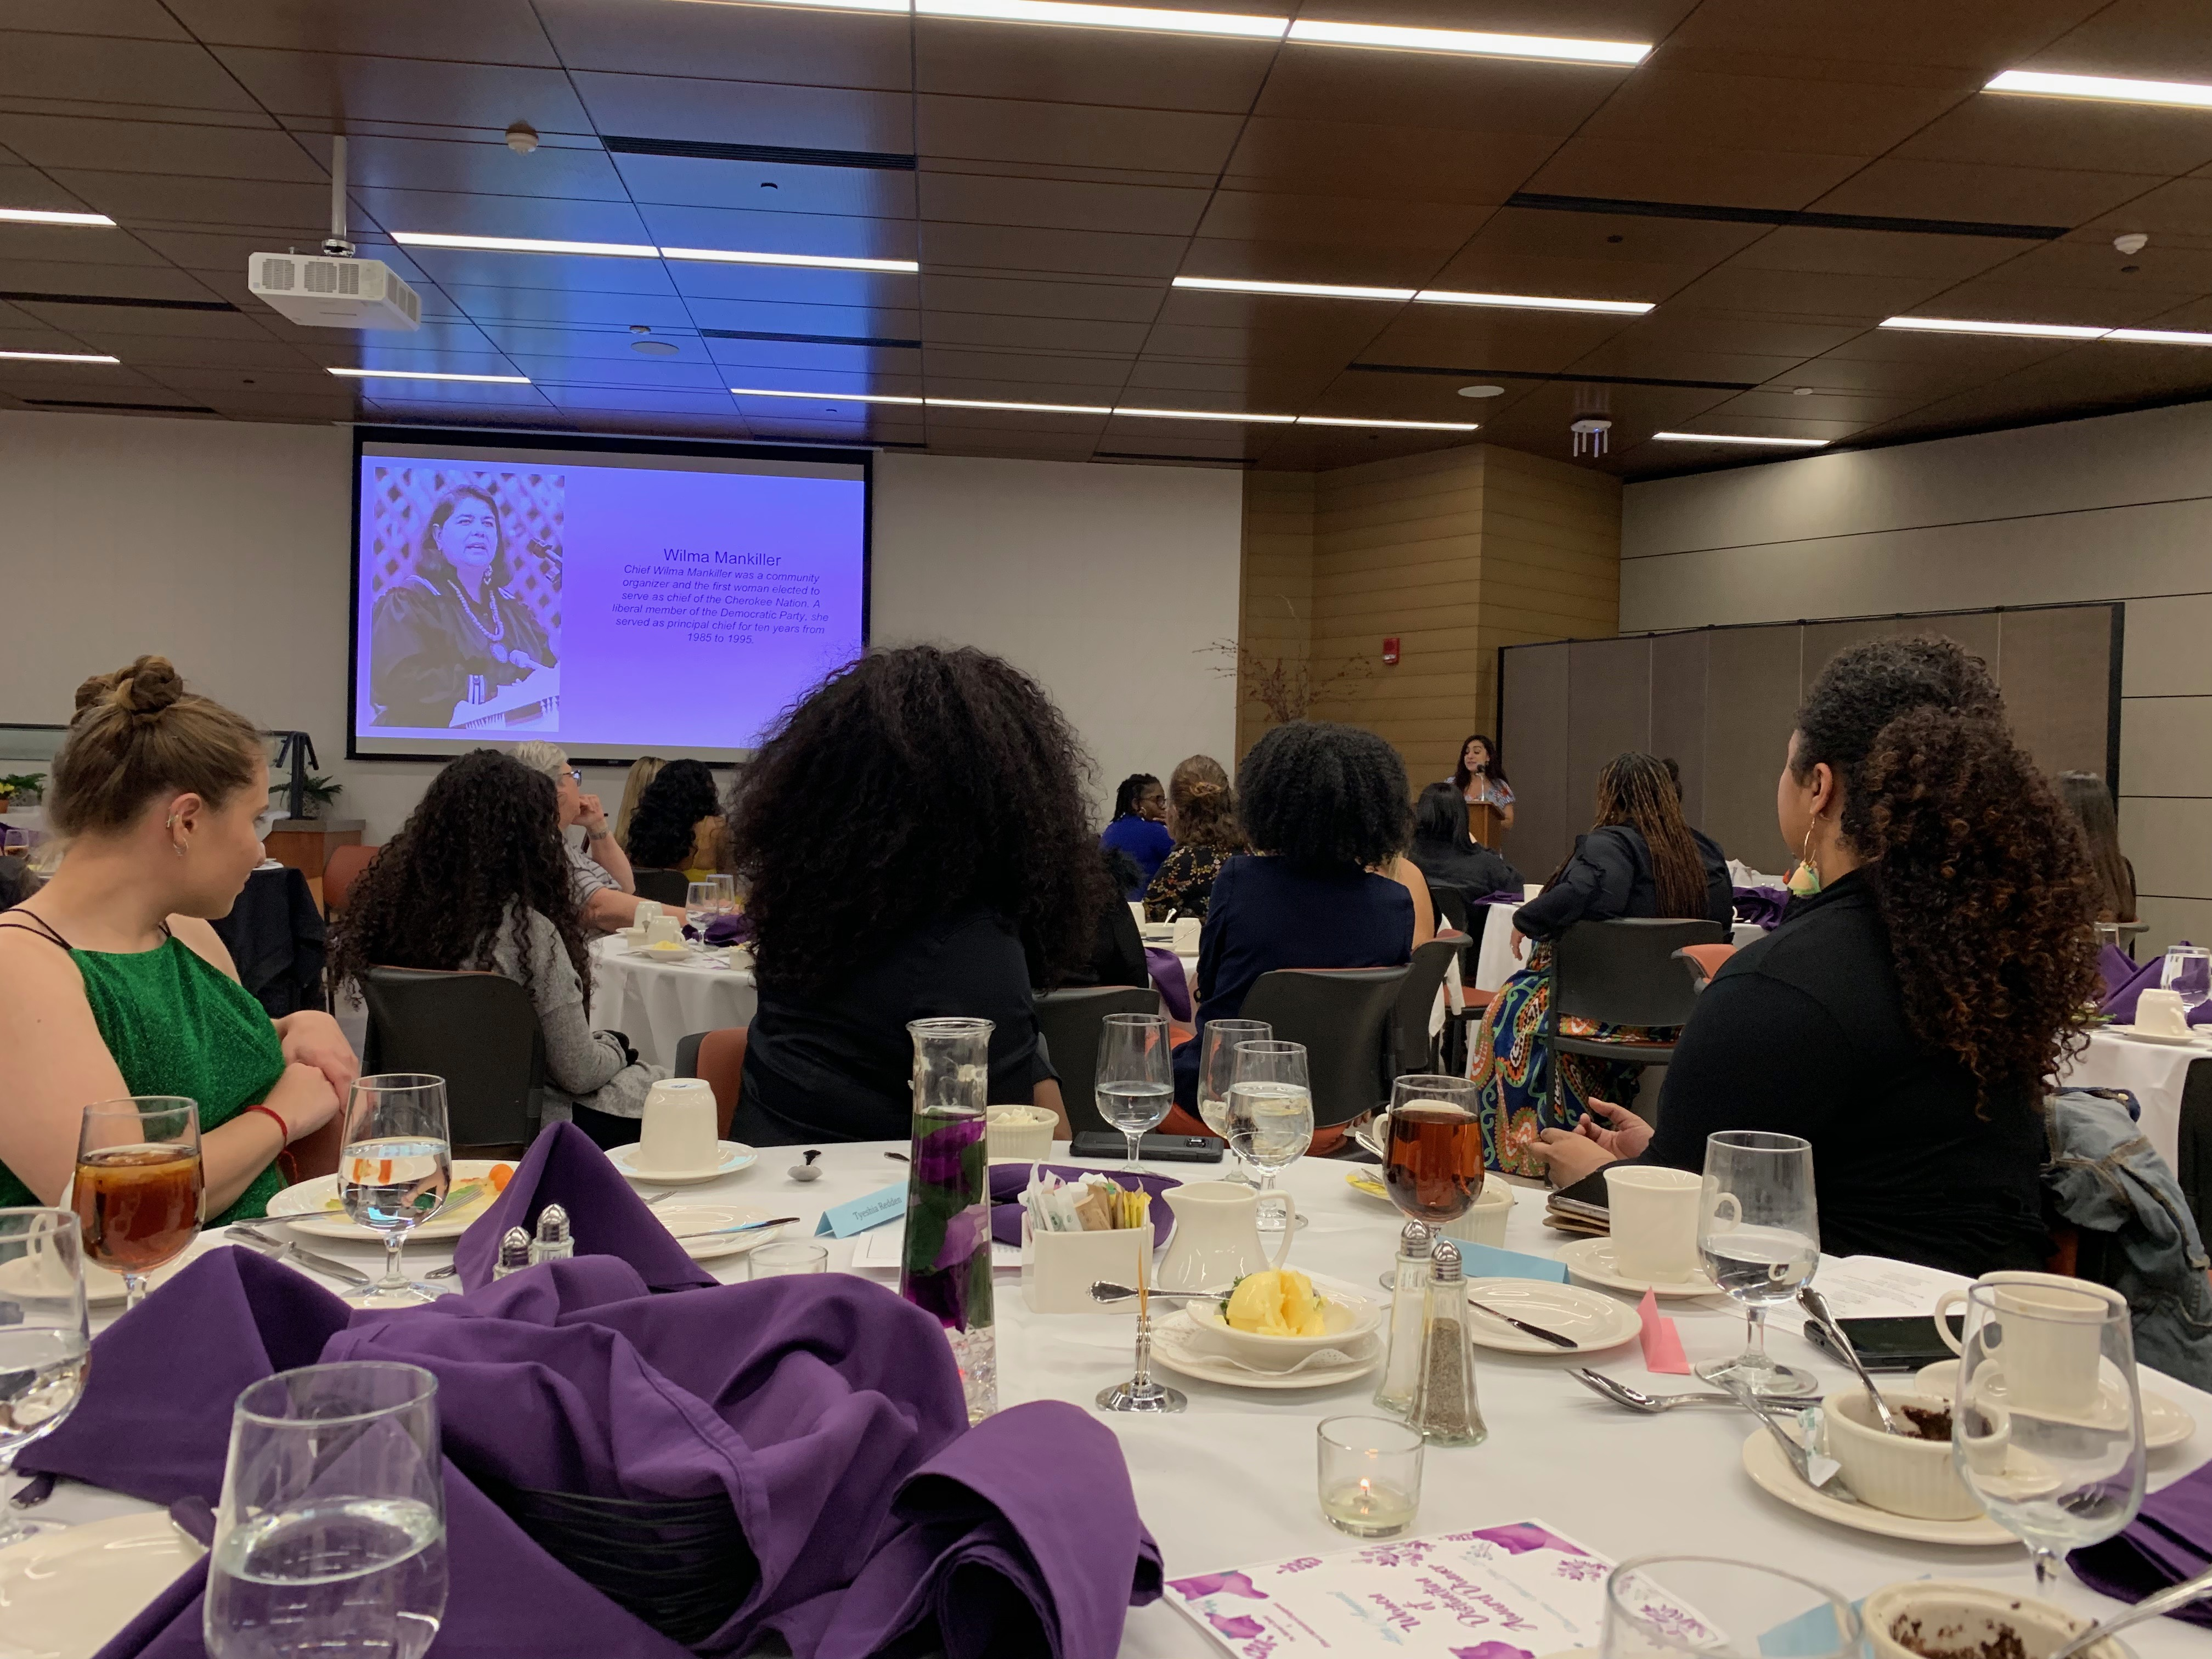 Wilma Mankiller was one of the inspiring women featured on the slideshow at the Women of Distinction Dinner (Photo Maddie Neiman/The Gettysburgian).